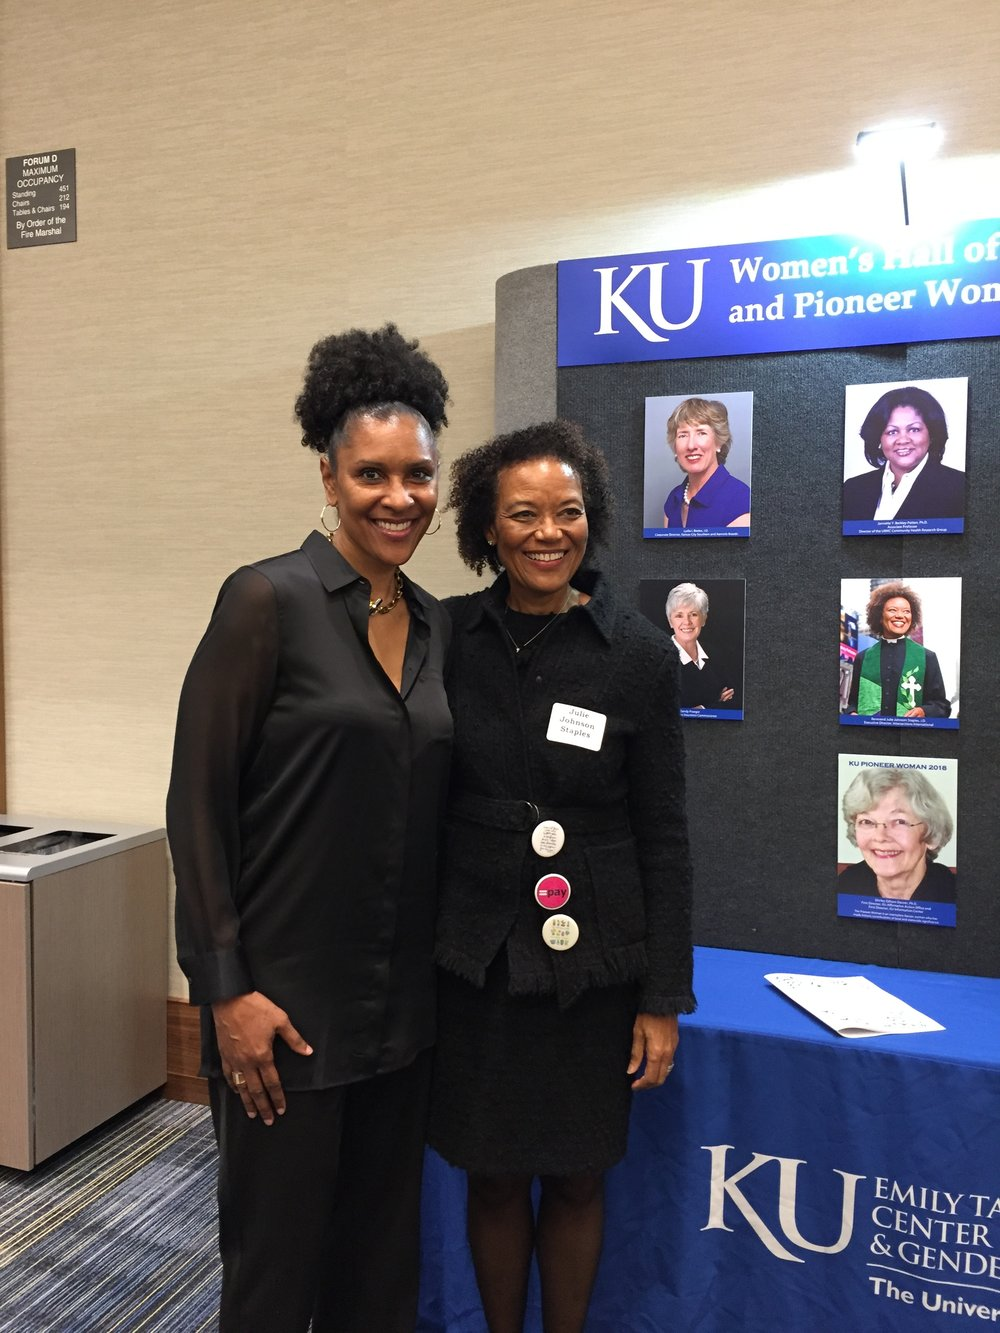 Julie Johnson Staples  (j'78) was inducted into the KU Women's Hall of Fame in April. Staples (right) is pictured with  Lynette Woodard  (c'81 left), who also was inducted. Staples is executive director of Intersections International in New York City. She recently served as interim senior minister of the 116-year-old Flatbush-Tompkins Congregational Church in Brooklyn, New York. As a KU student, she was the first African-American editor of the University Daily Kansan. She eventually became the White House correspondent for the Baltimore Sun and The New York Times. In 1994, she earned her law degree from Georgetown University and went on to serve as the Justice Department correspondent for ABC News. She later began a career in international investing at Warburg Pincus and became the firm's first African-American partner. Her career shifted again when she returned to graduate school to study theology and became ordained in the Congregational and American Baptist Church. Also inducted was  Lydia Beebe  (j'74, l'77, pictured on the wall behind Staples), who has a long history as a business leader. She has served on several corporate boards and has been a champion for working women. She received lifetime achievement awards from the Professional Business Women of California and Corporate Secretary magazine and was honored by the state of California as a Civil Rights Hero in 2009.